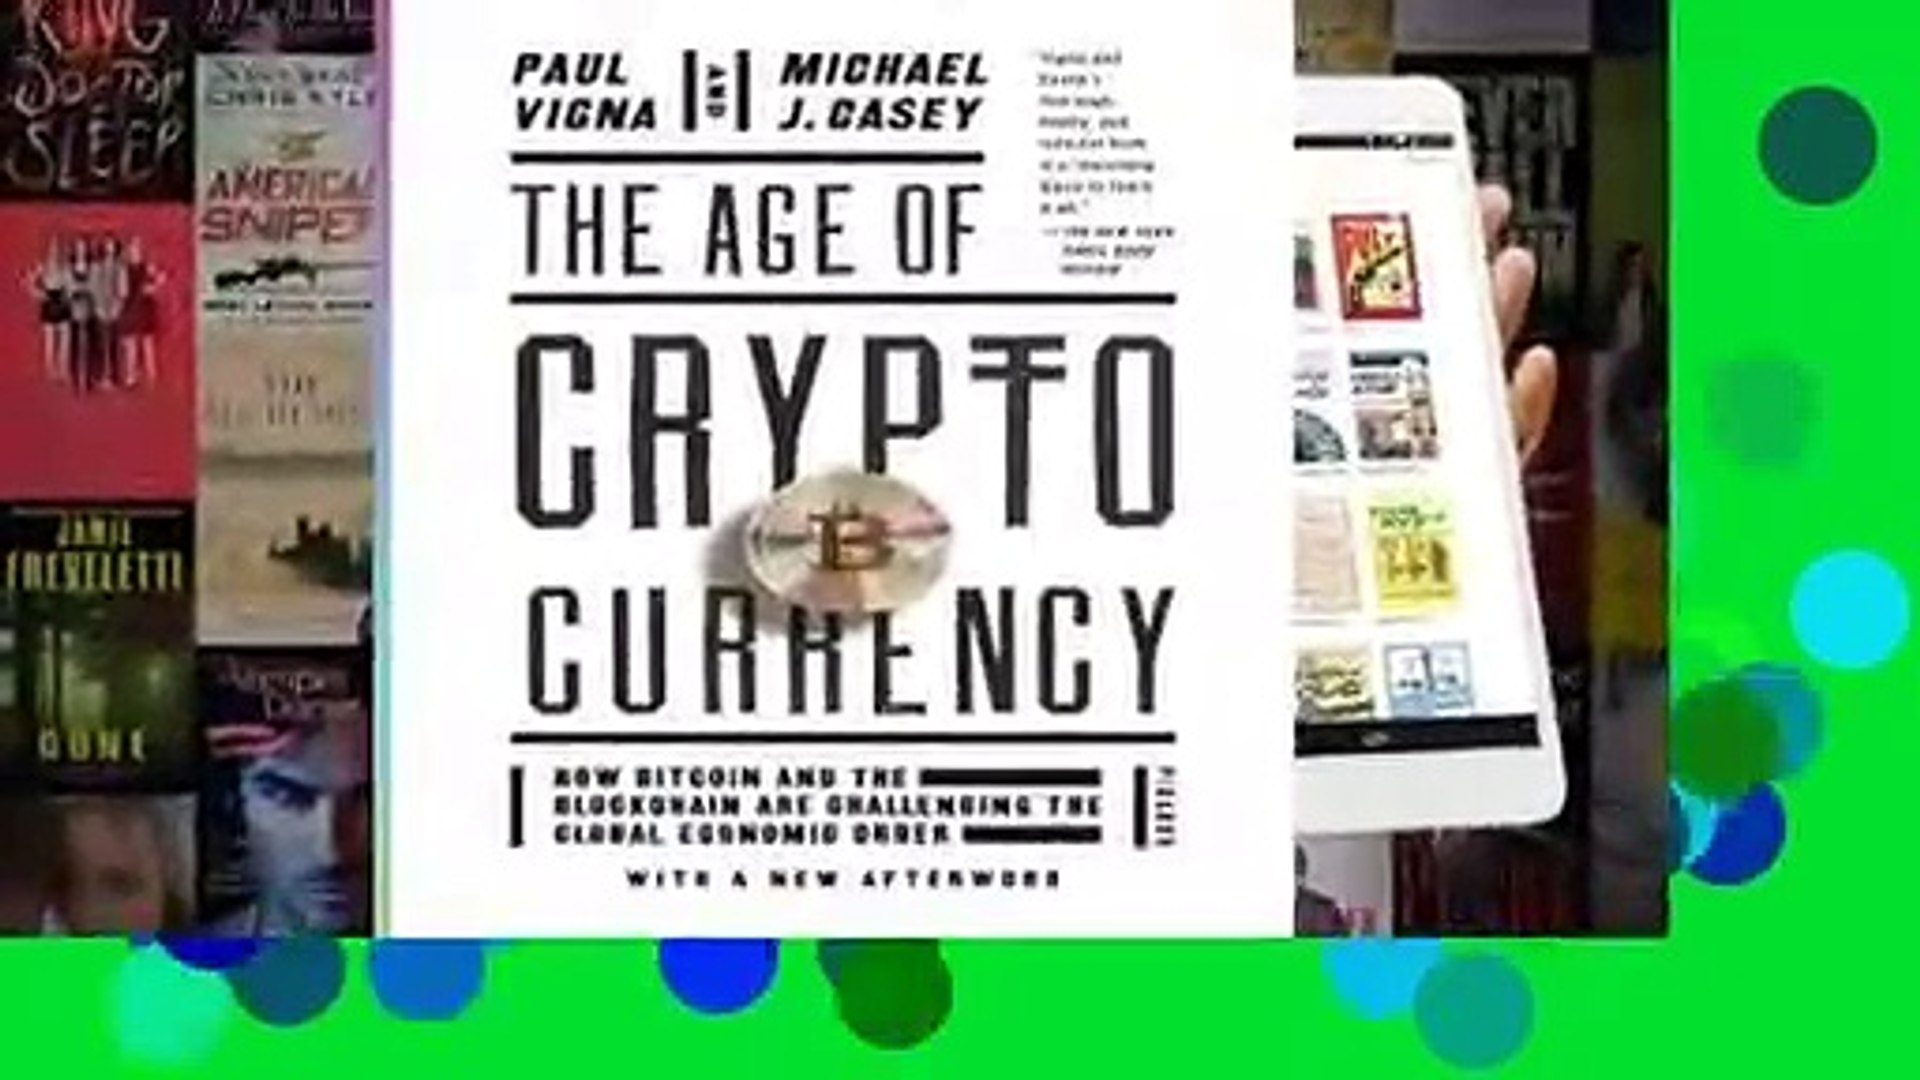 [Read] The Age of Cryptocurrency: How Bitcoin and the Blockchain Are Challenging the Global